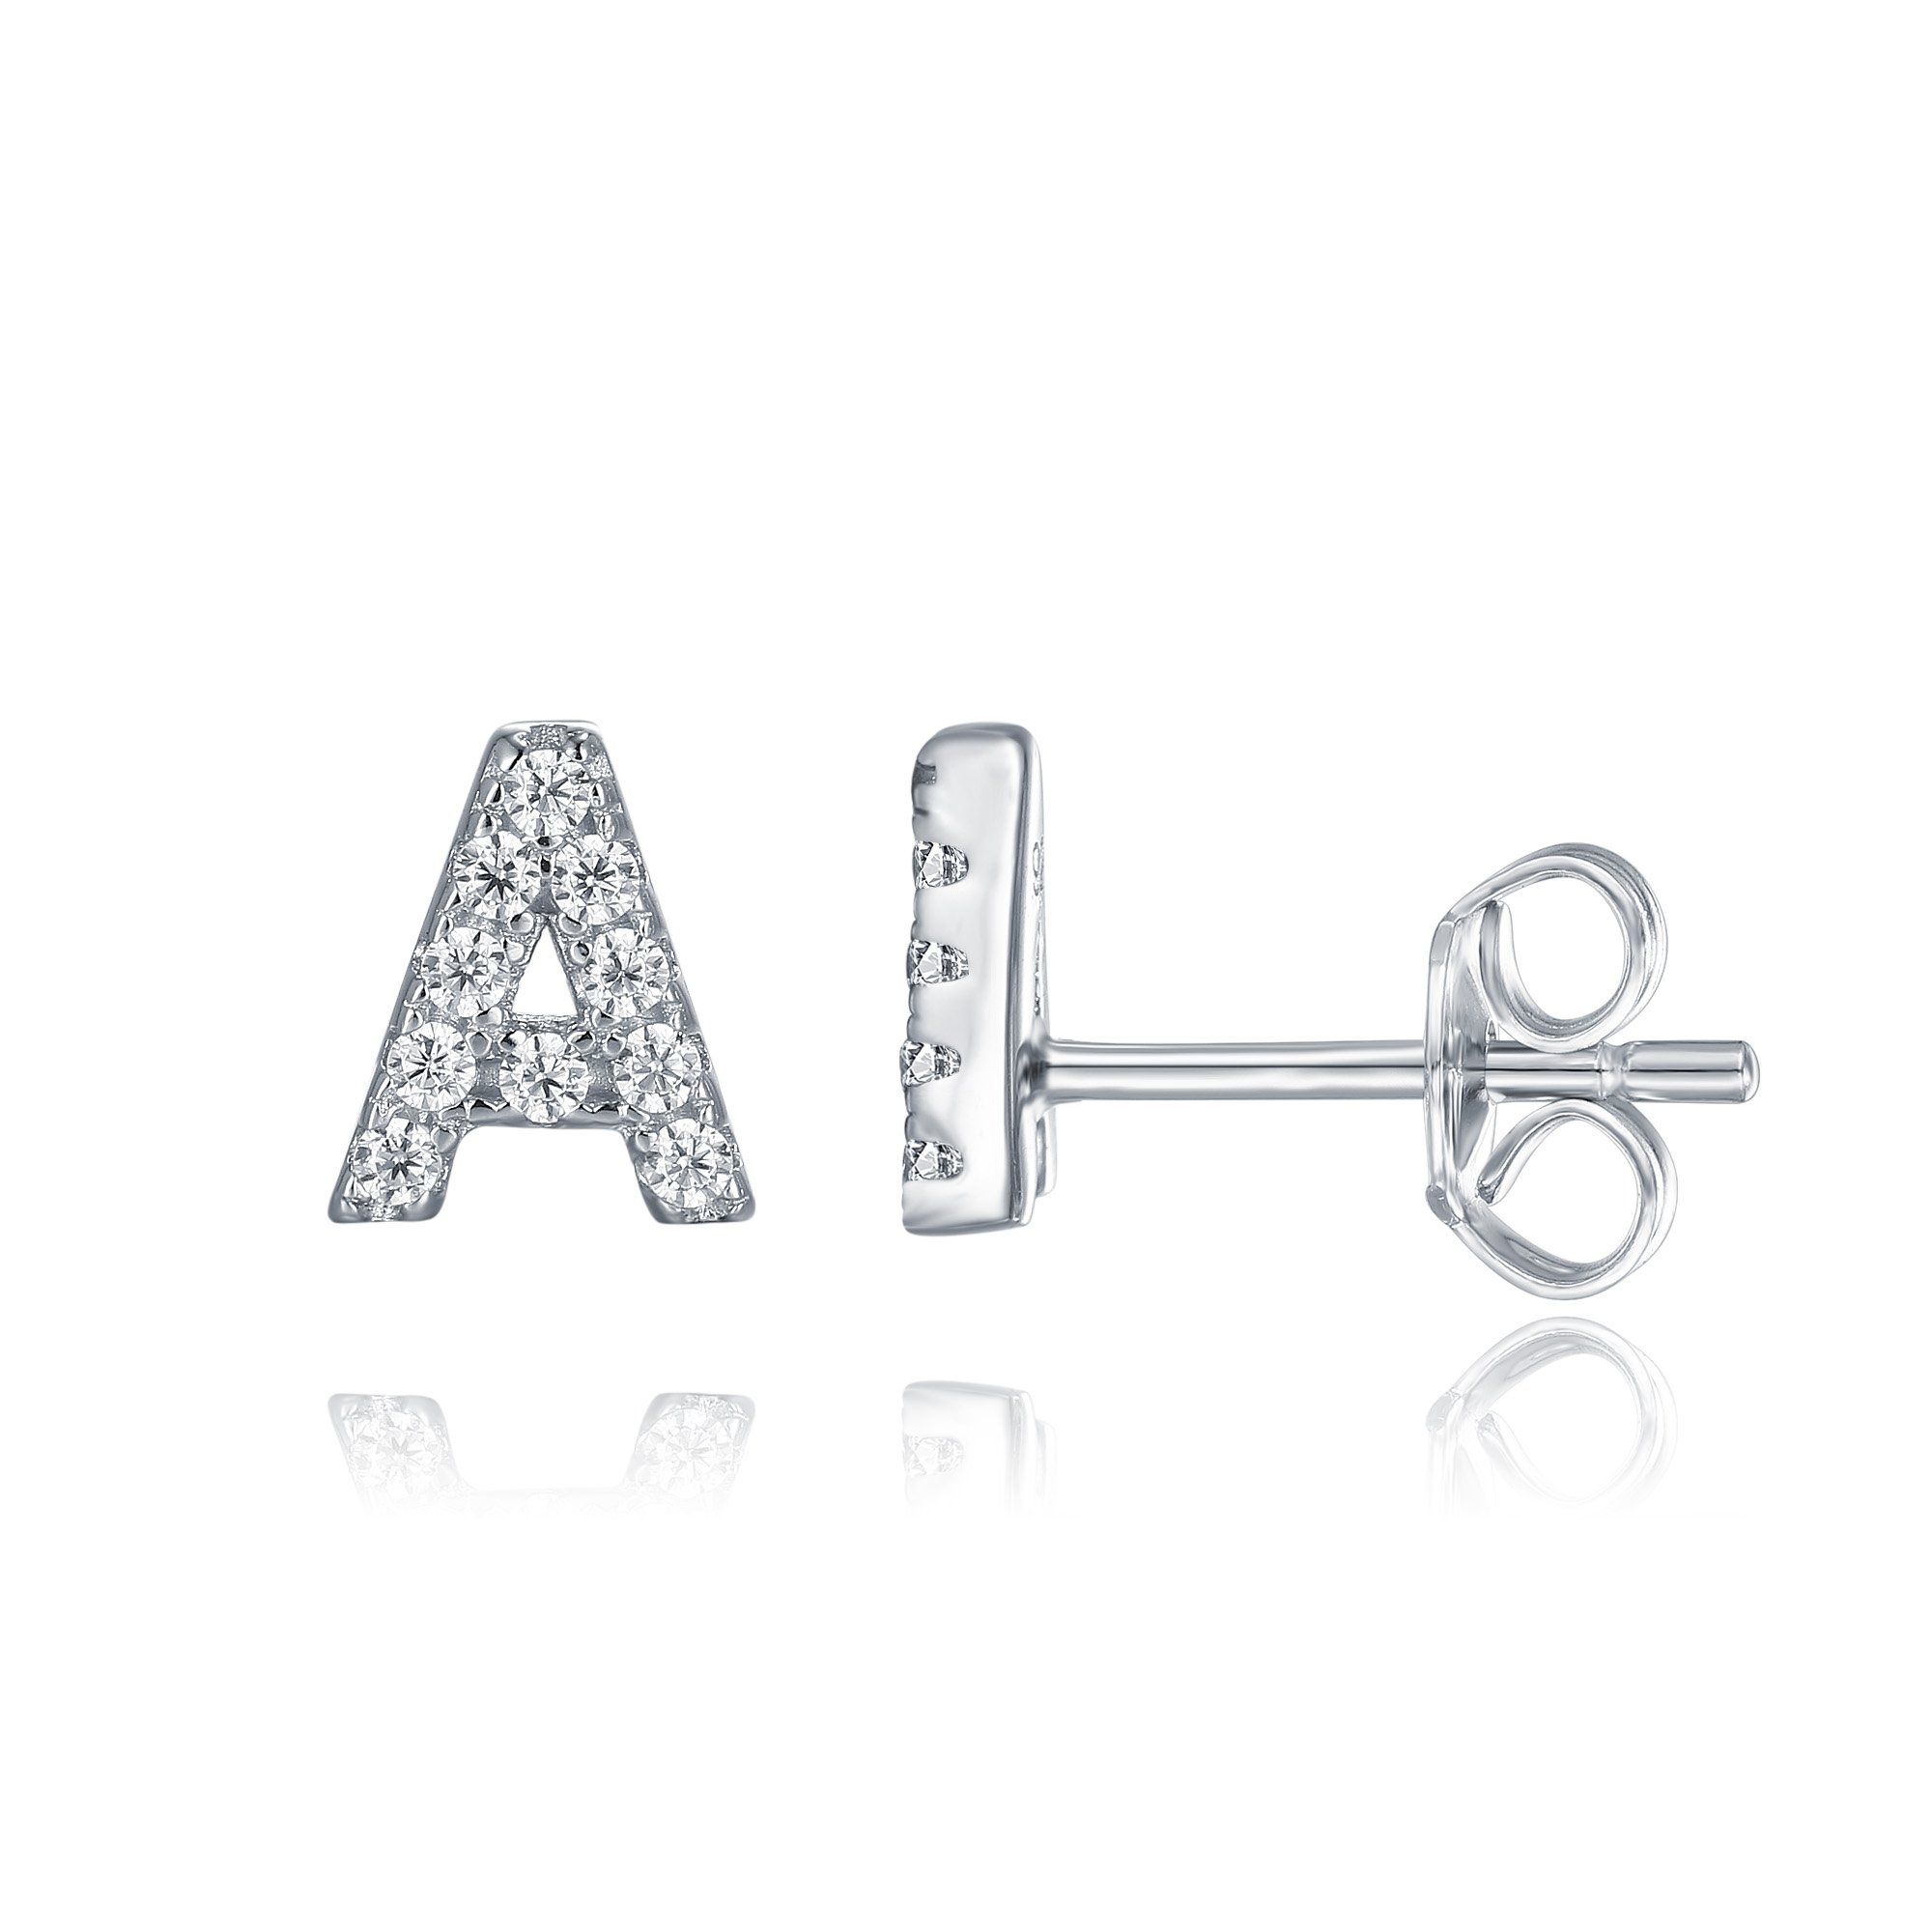 PAVOI 925 Sterling Silver CZ Simulated Diamond Stud Earrings Fashion Alphabet Letter Initial Earrings - A by PAVOI